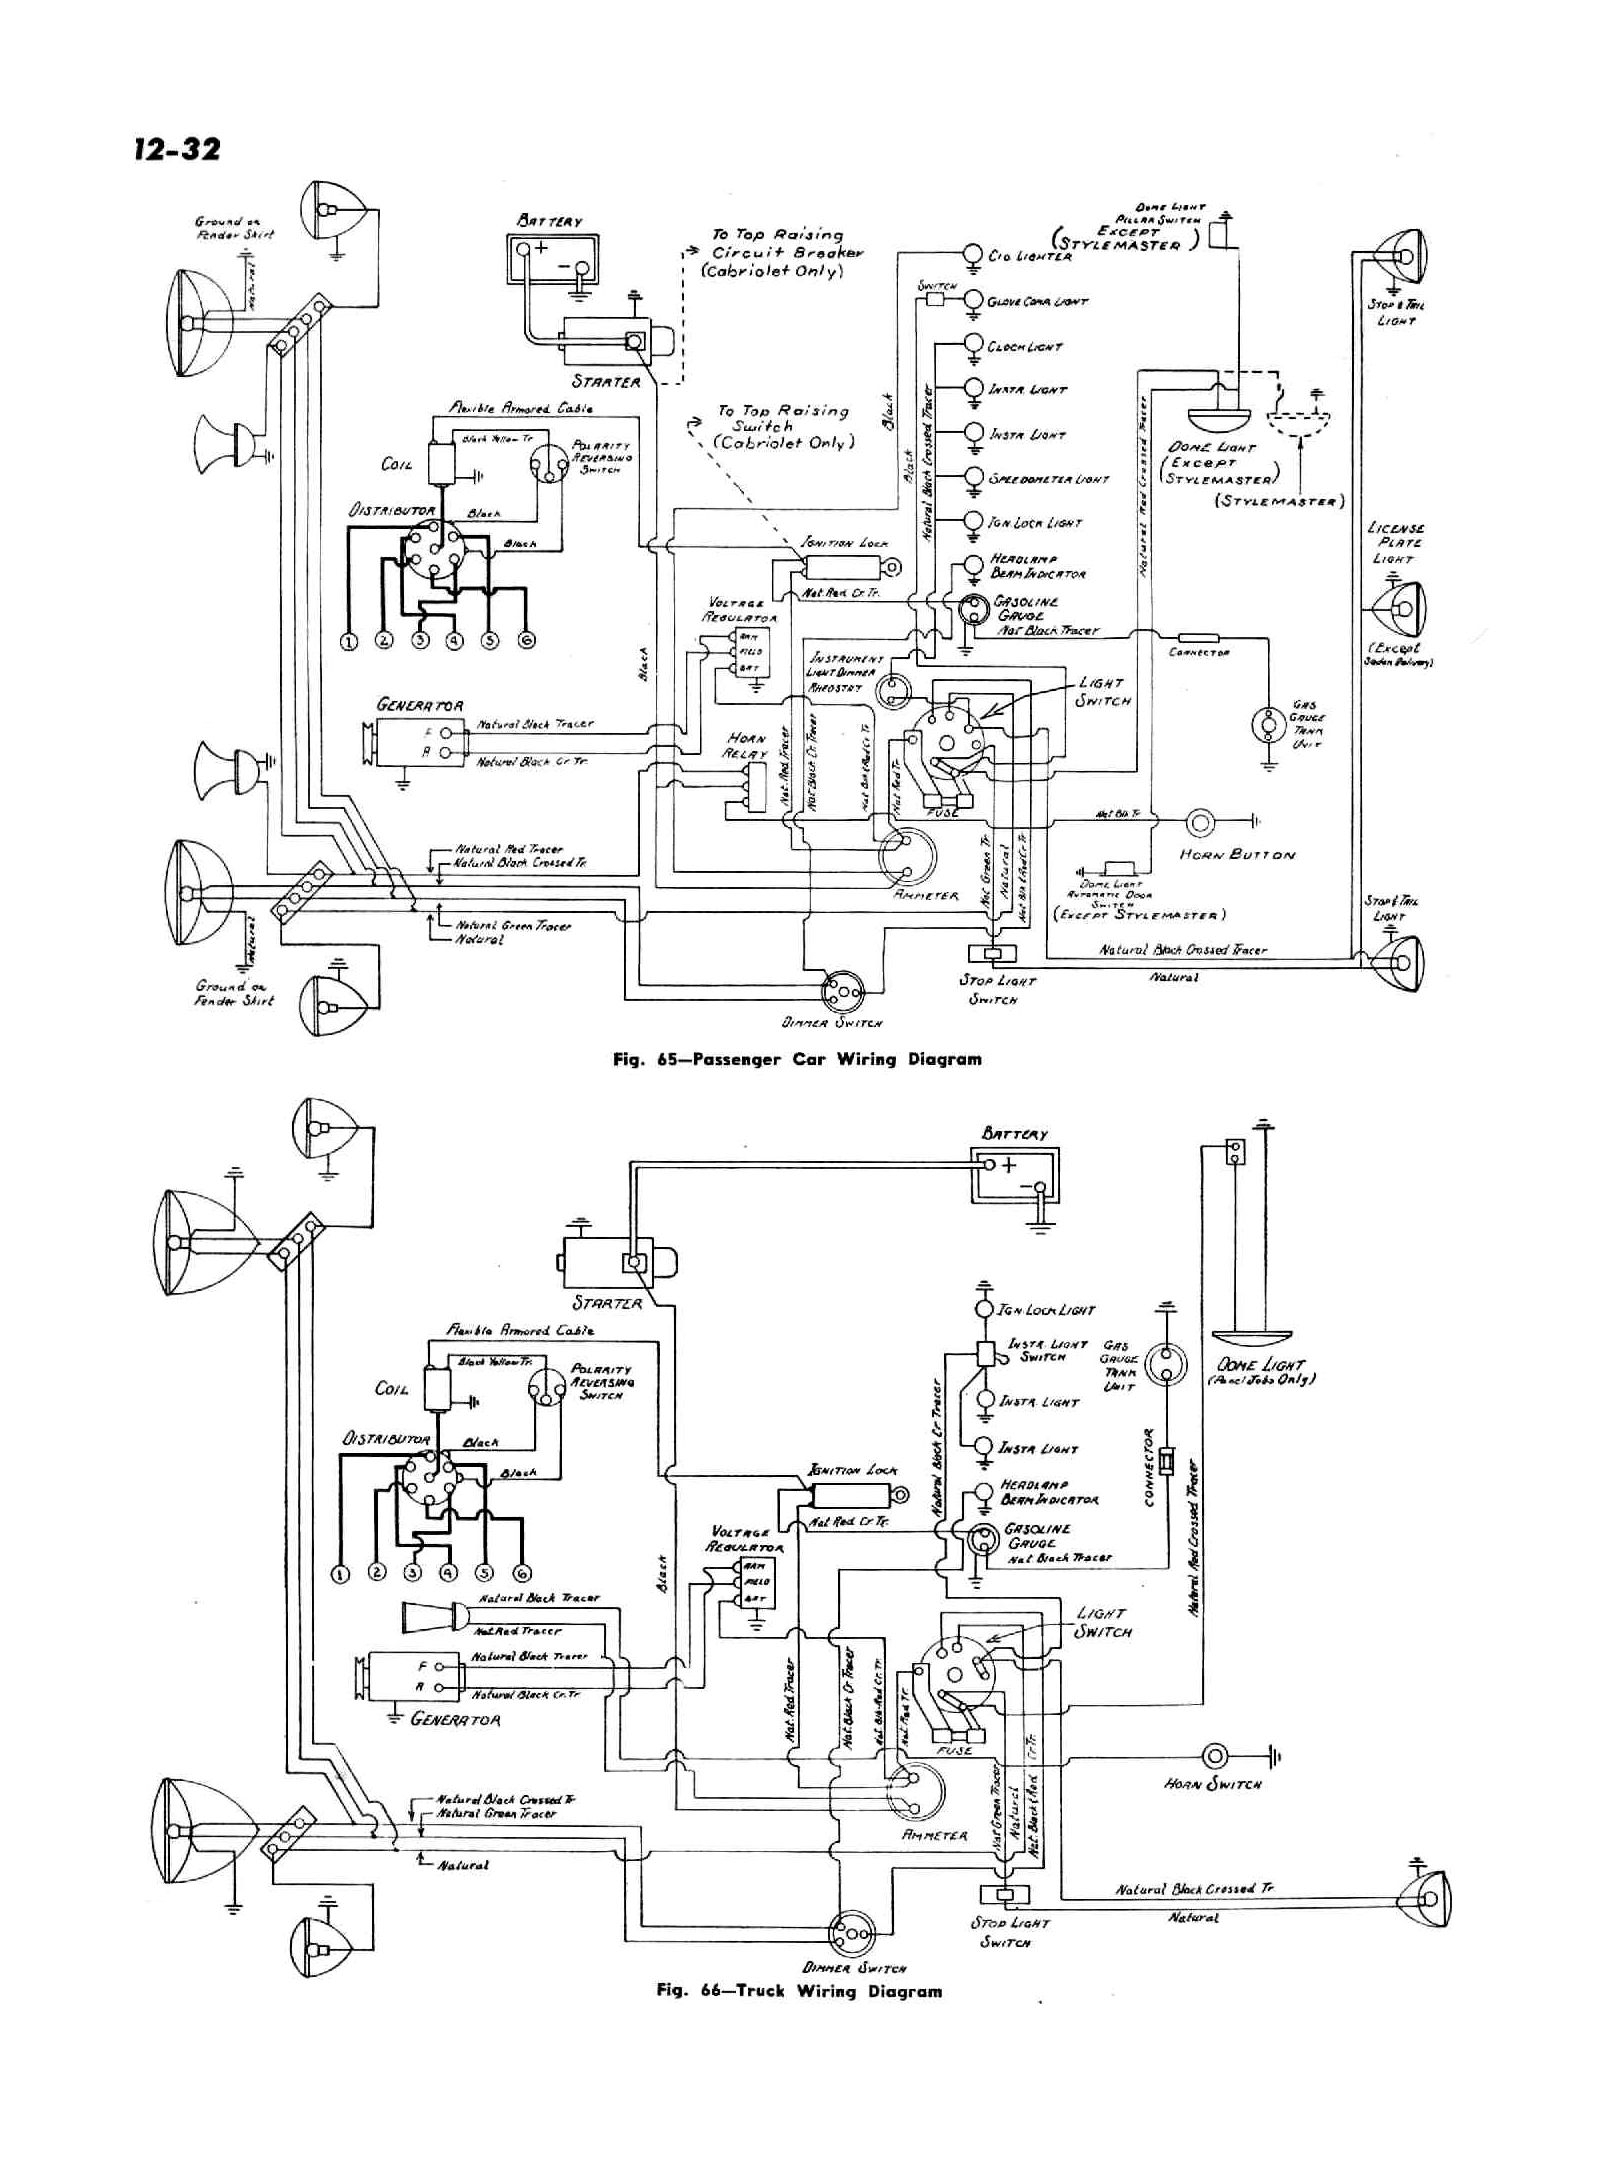 farmall 706 diesel wiring diagram most searched wiring diagram ih 350 tractor  wiring diagram 1066 international